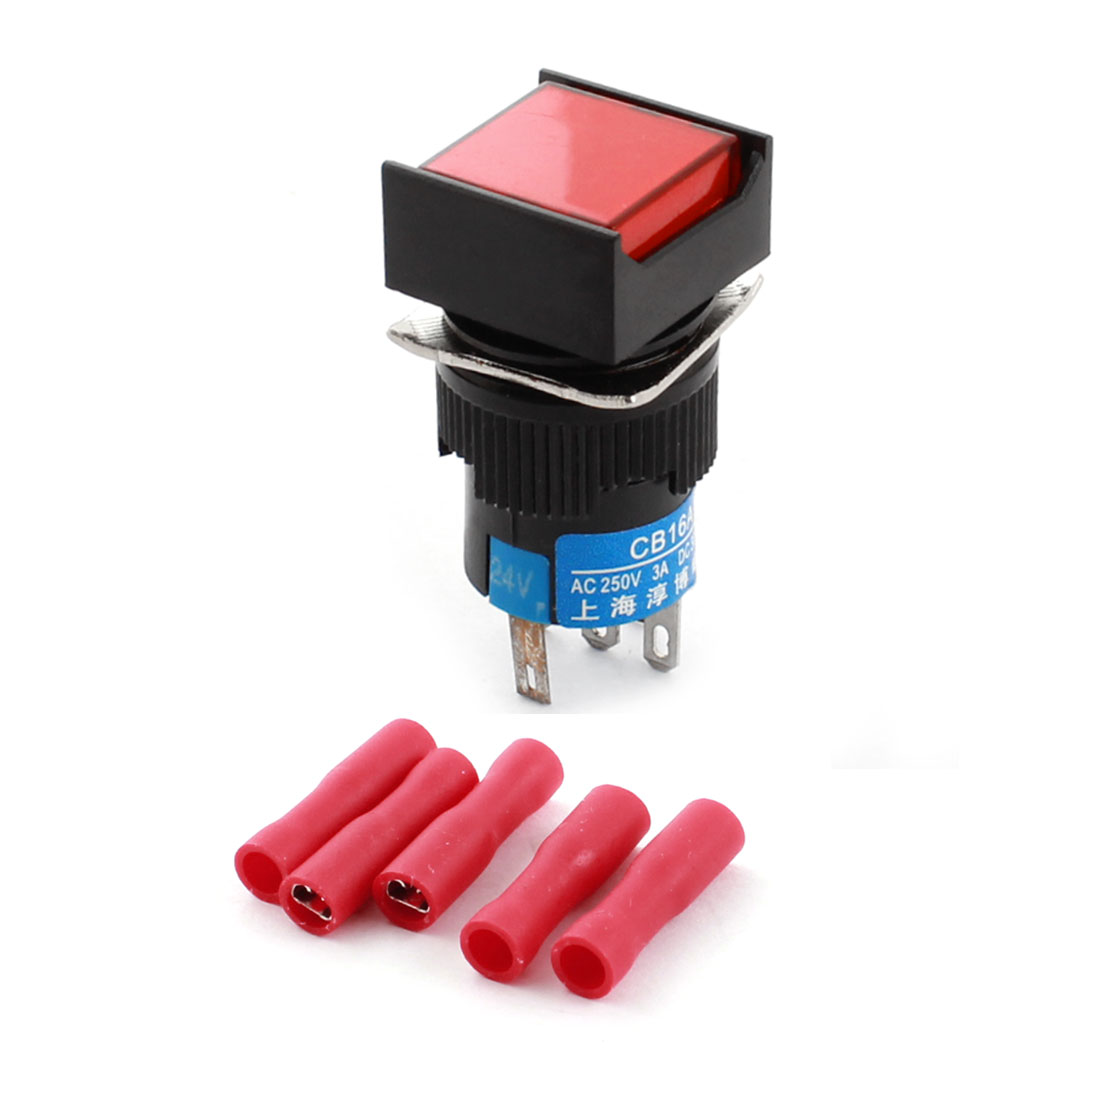 DC 24V Red Lamp Momentary Square Push Button Switch + Insulated Crimp Terminal